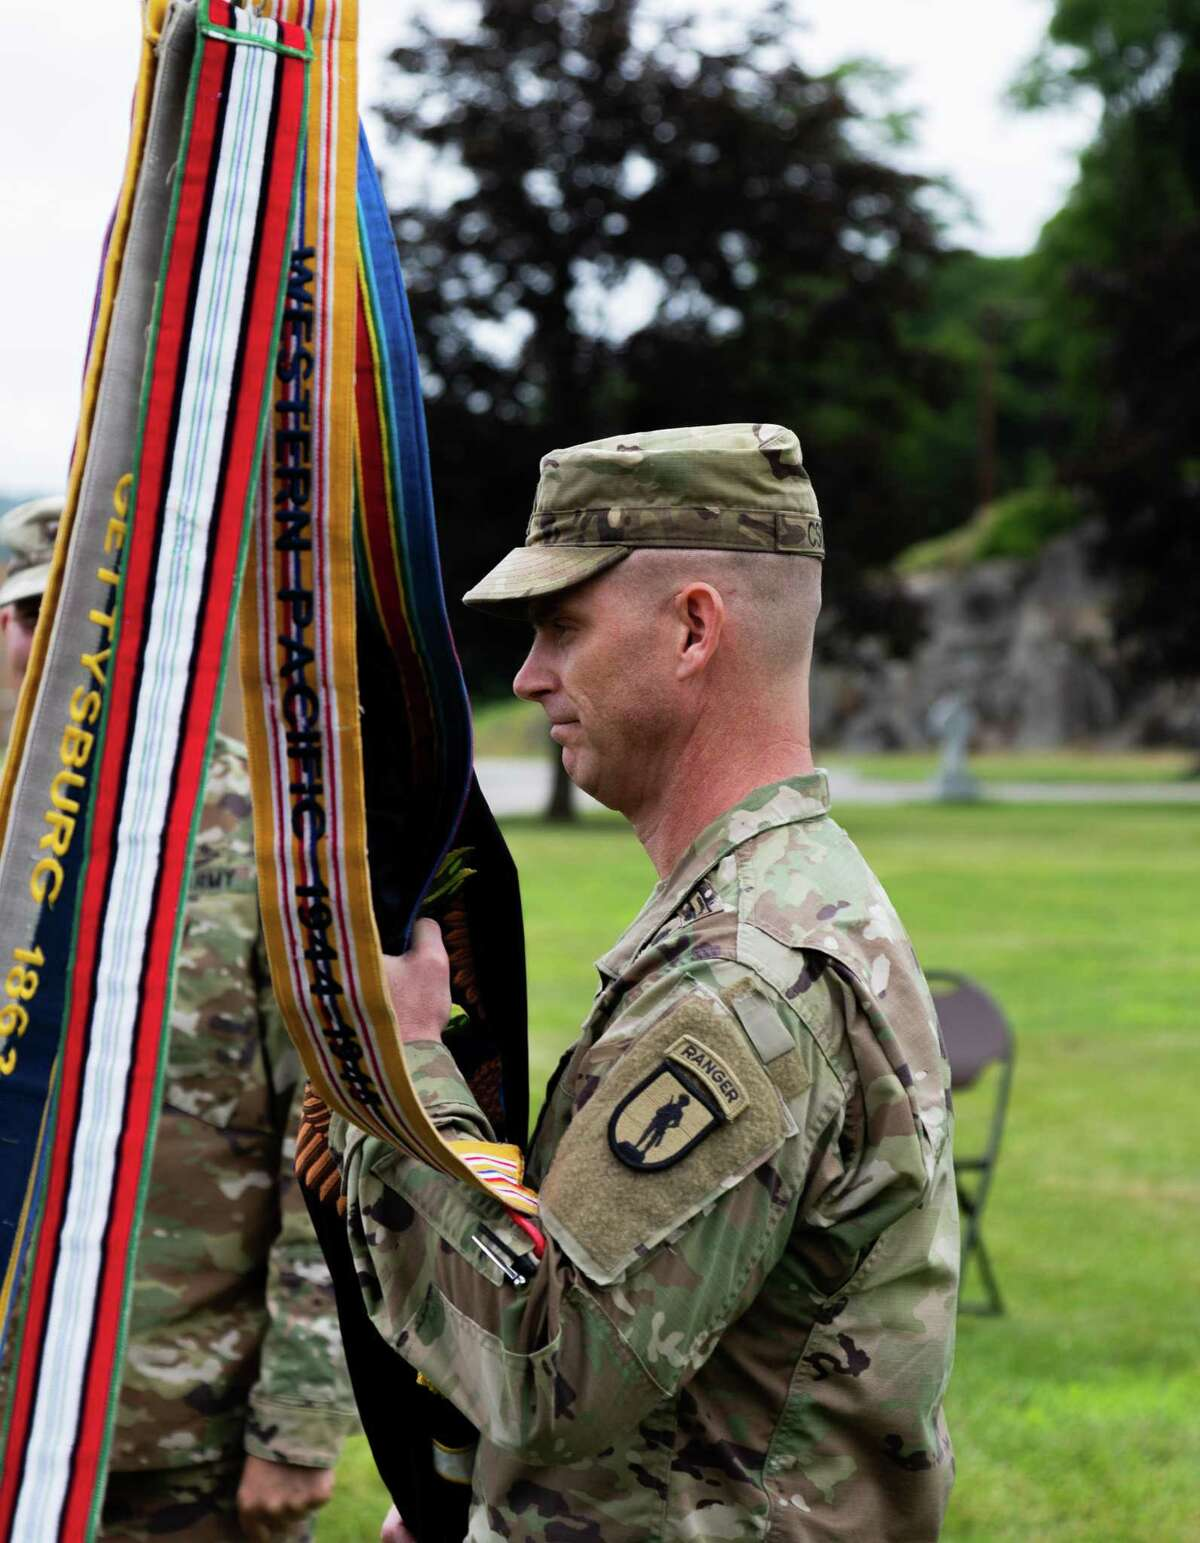 Col. Diane M. Armbruster, the outgoing commander of the 106th Regiment (RTI), relinquished command to Lt. Col. Jeffery L. Csoka, the incoming commander of the 106th Regiment (RTI), during a change of command ceremony at Camp Smith Training Site in Cortlandt Manor, N.Y., on June 12, 2021.